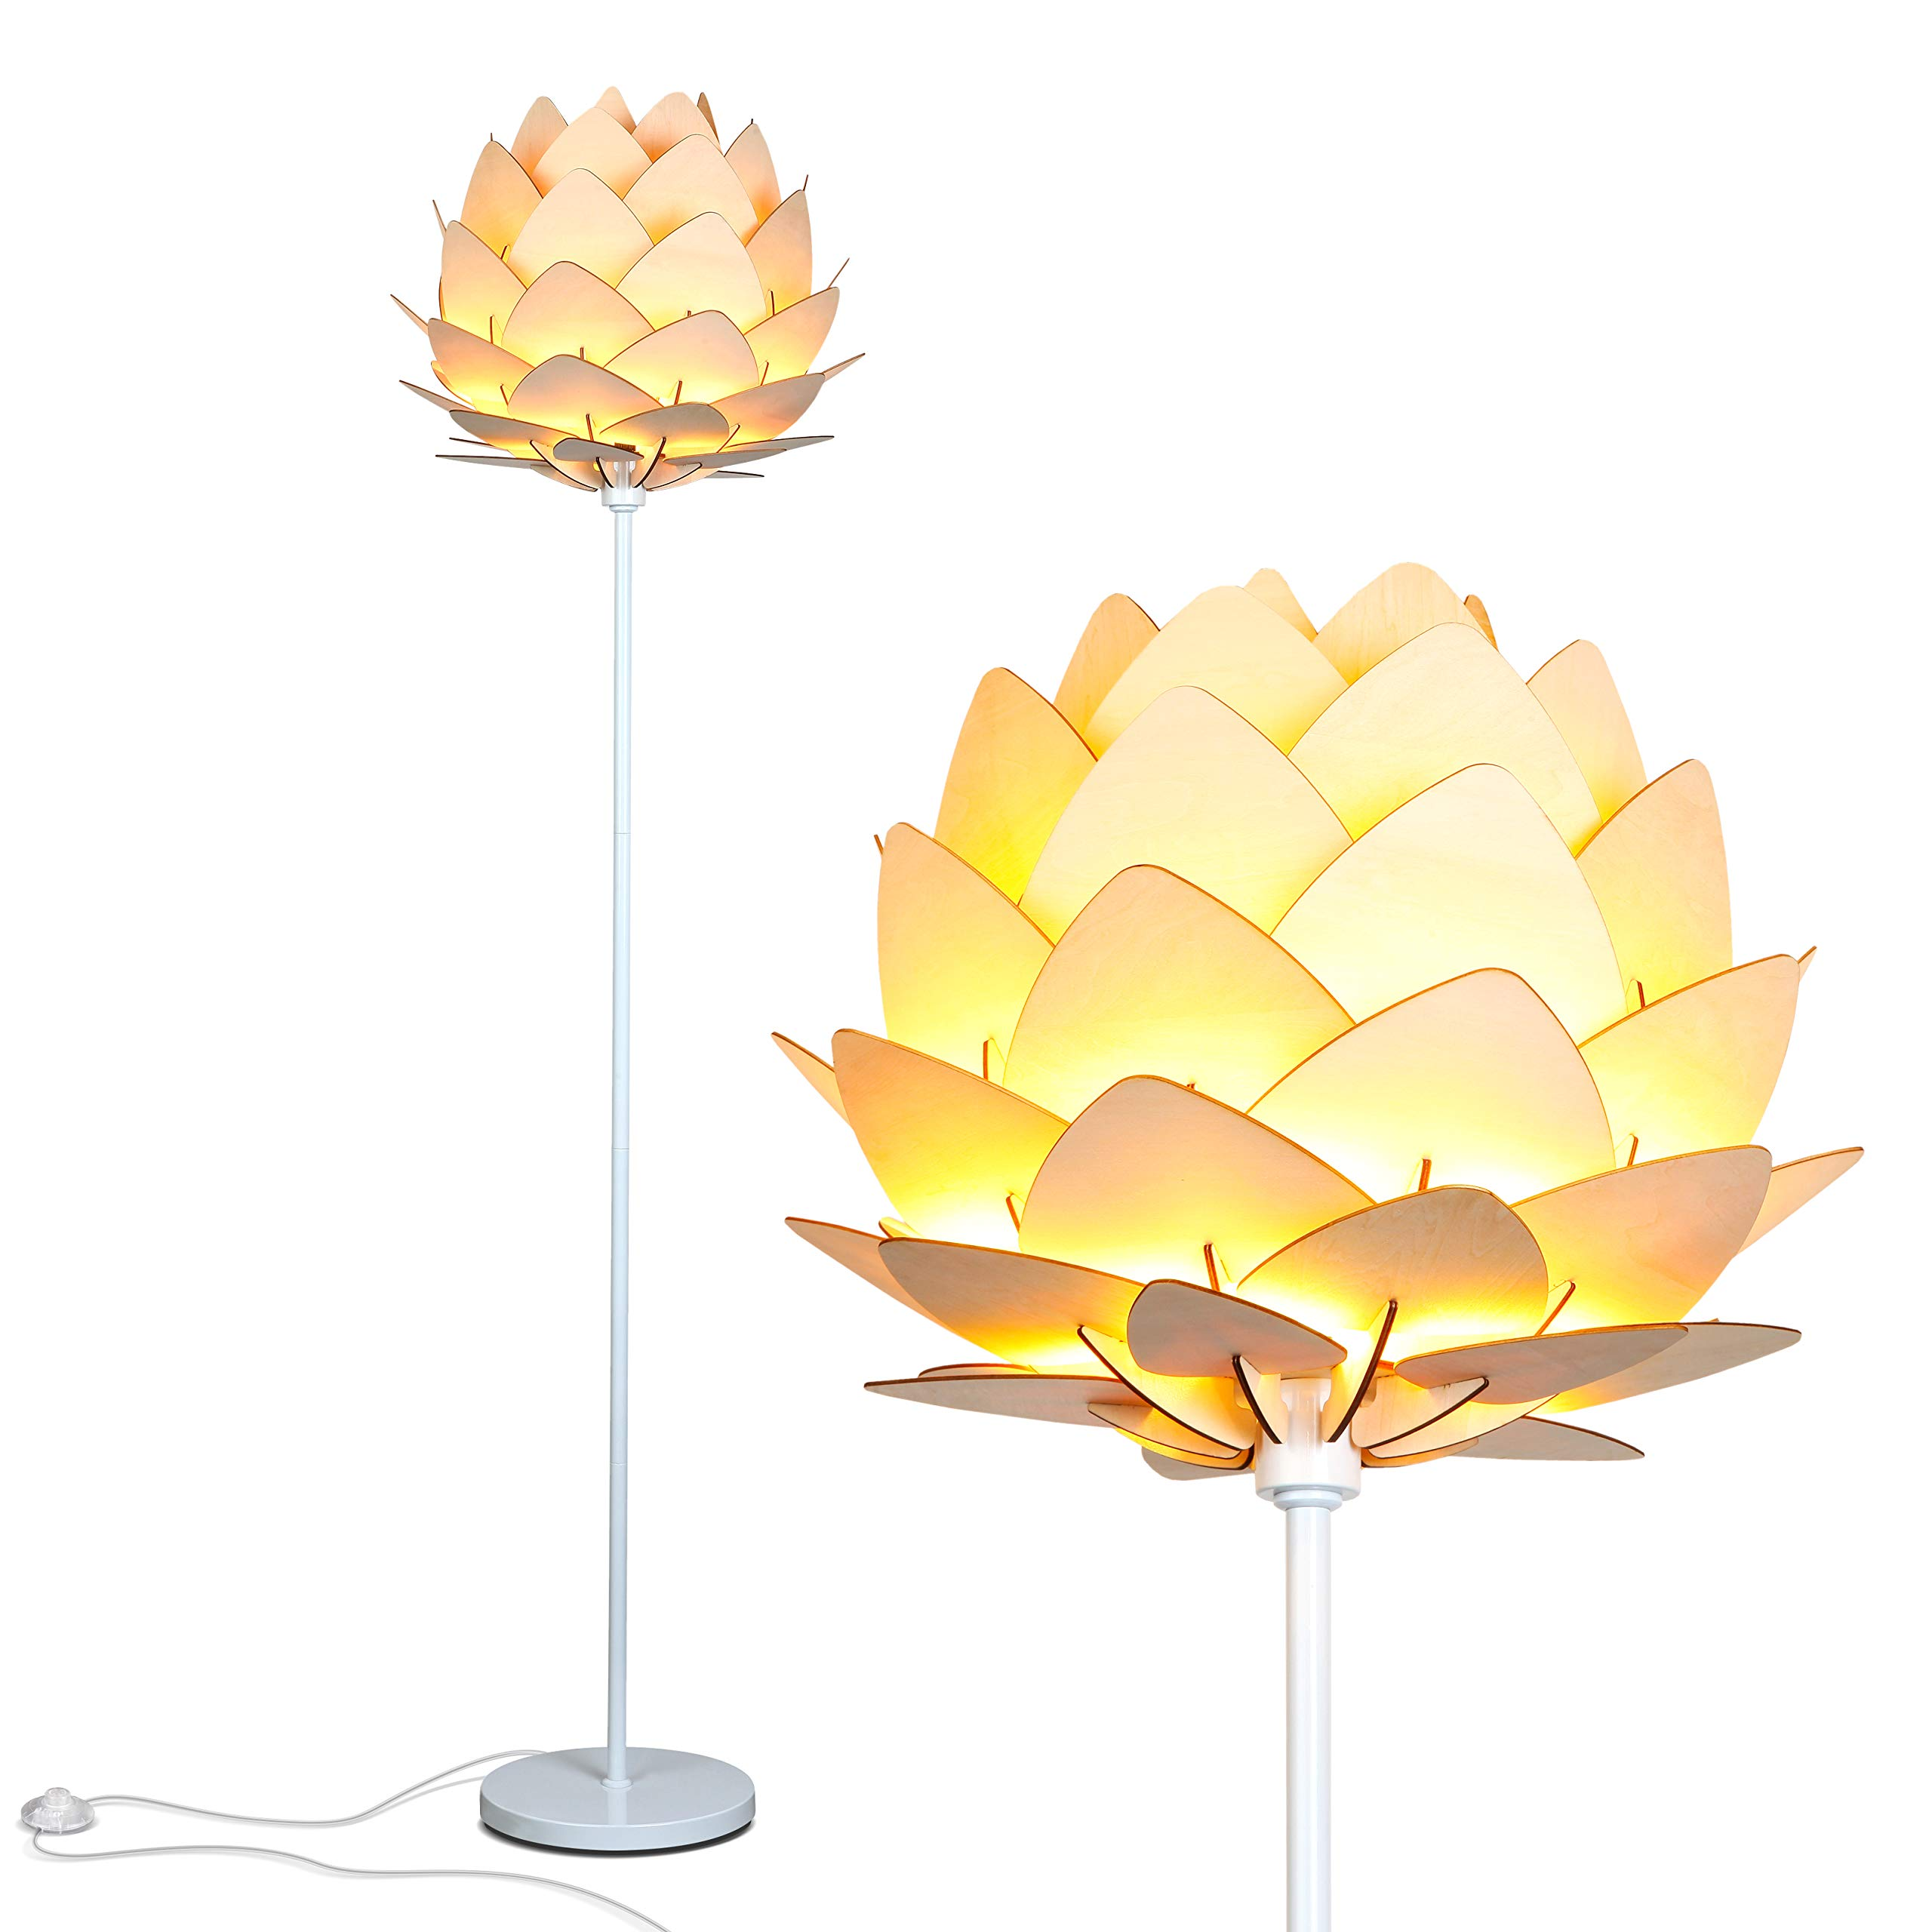 Amazon Com Brightech Artichoke Floor Lamp Unique Modern Bohemian Boho Standing Light For Trendy Vintage Living Rooms Bedrooms Modern Multi Panel Wooden Shade Tall Pole Uplight Lamp Home Improvement